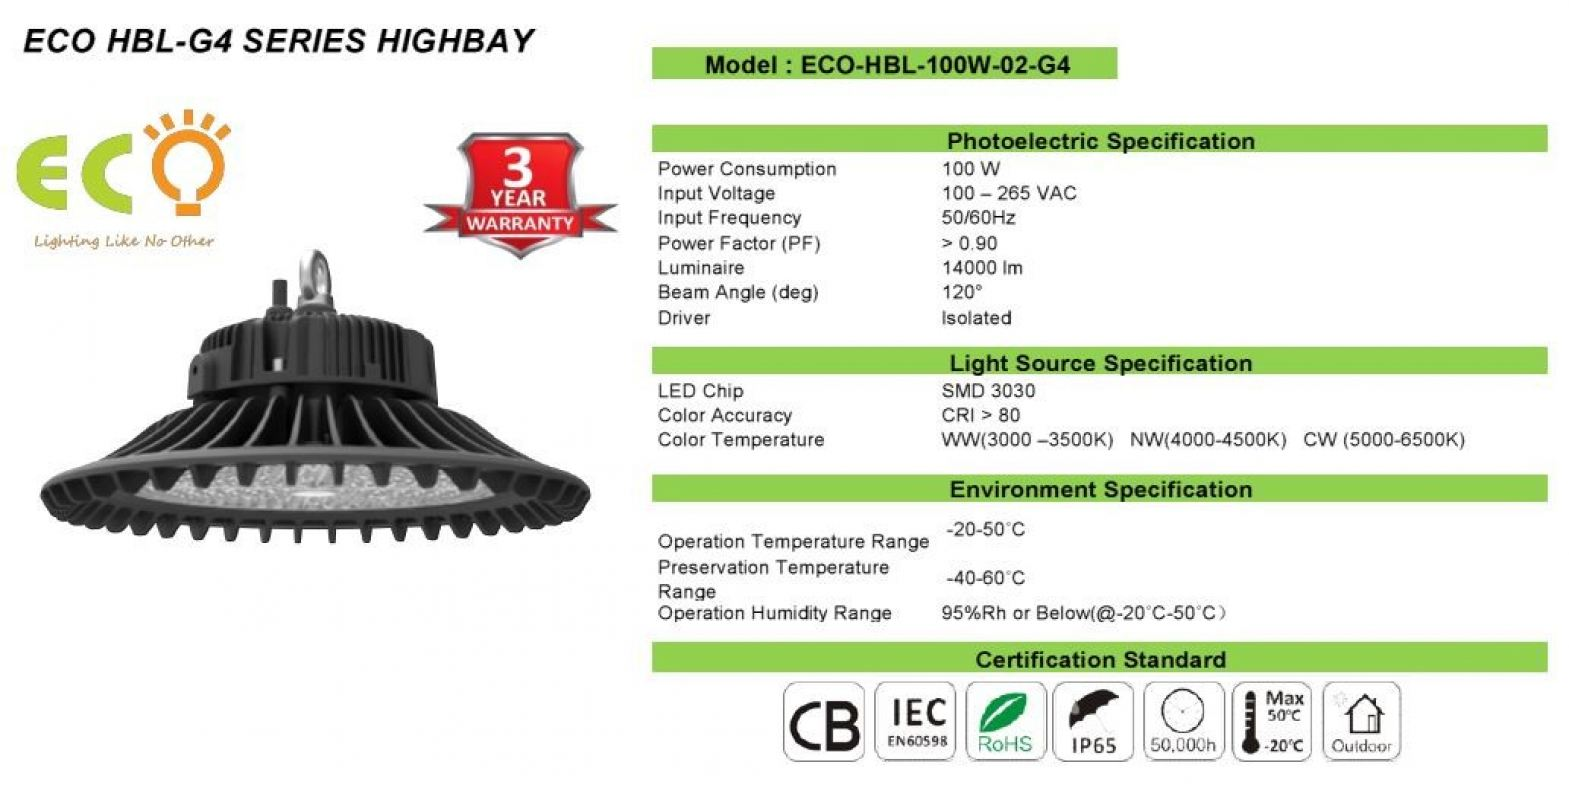 ECO-HBL-100W-G4 SERIES  LED G4-SERIES LED HBL-G4 SERIES Kluang, Johor, Malaysia Supplier Supply Manufacturer | ECO LED Lighting Solution